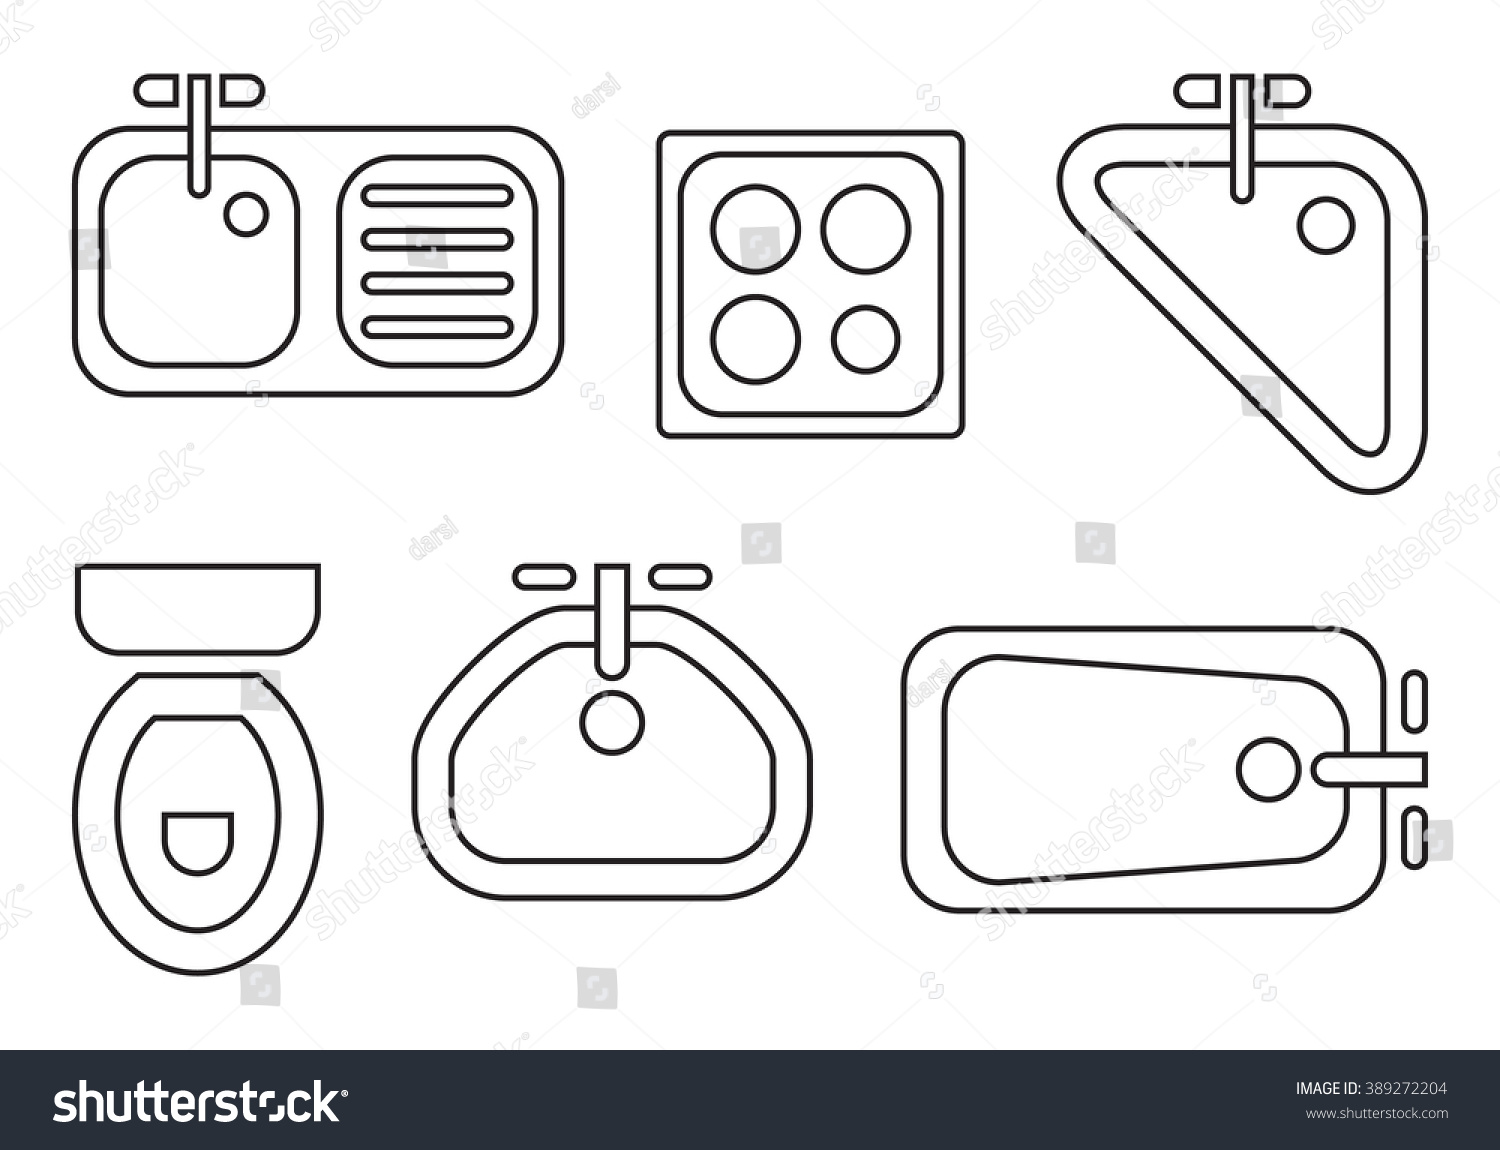 Symbols Used In Floor Plans Standard Bathroom And Kitchen Symbols Used In Architecture